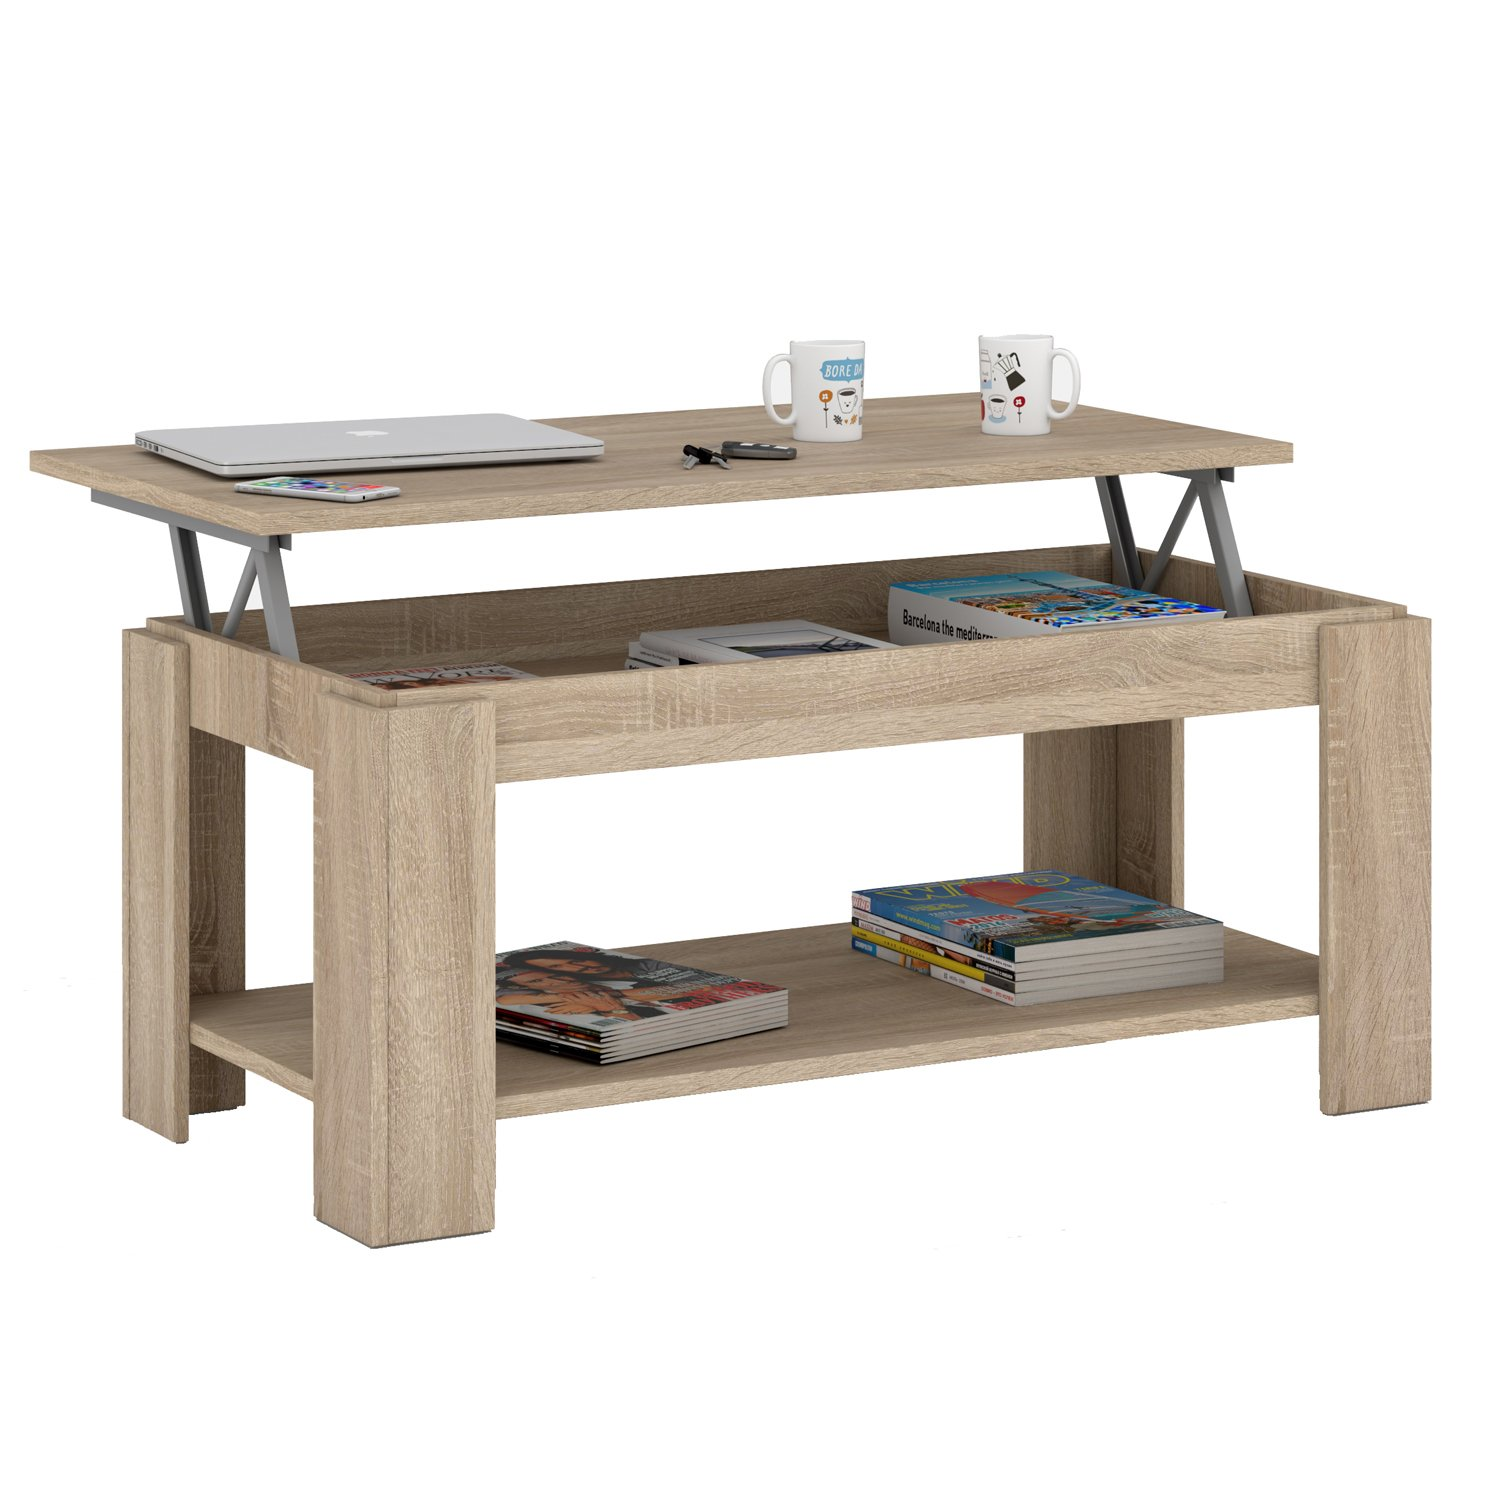 Stylish lift top coffee dining table with storage shelf canadian oak ebay - Tables basses haut de gamme ...